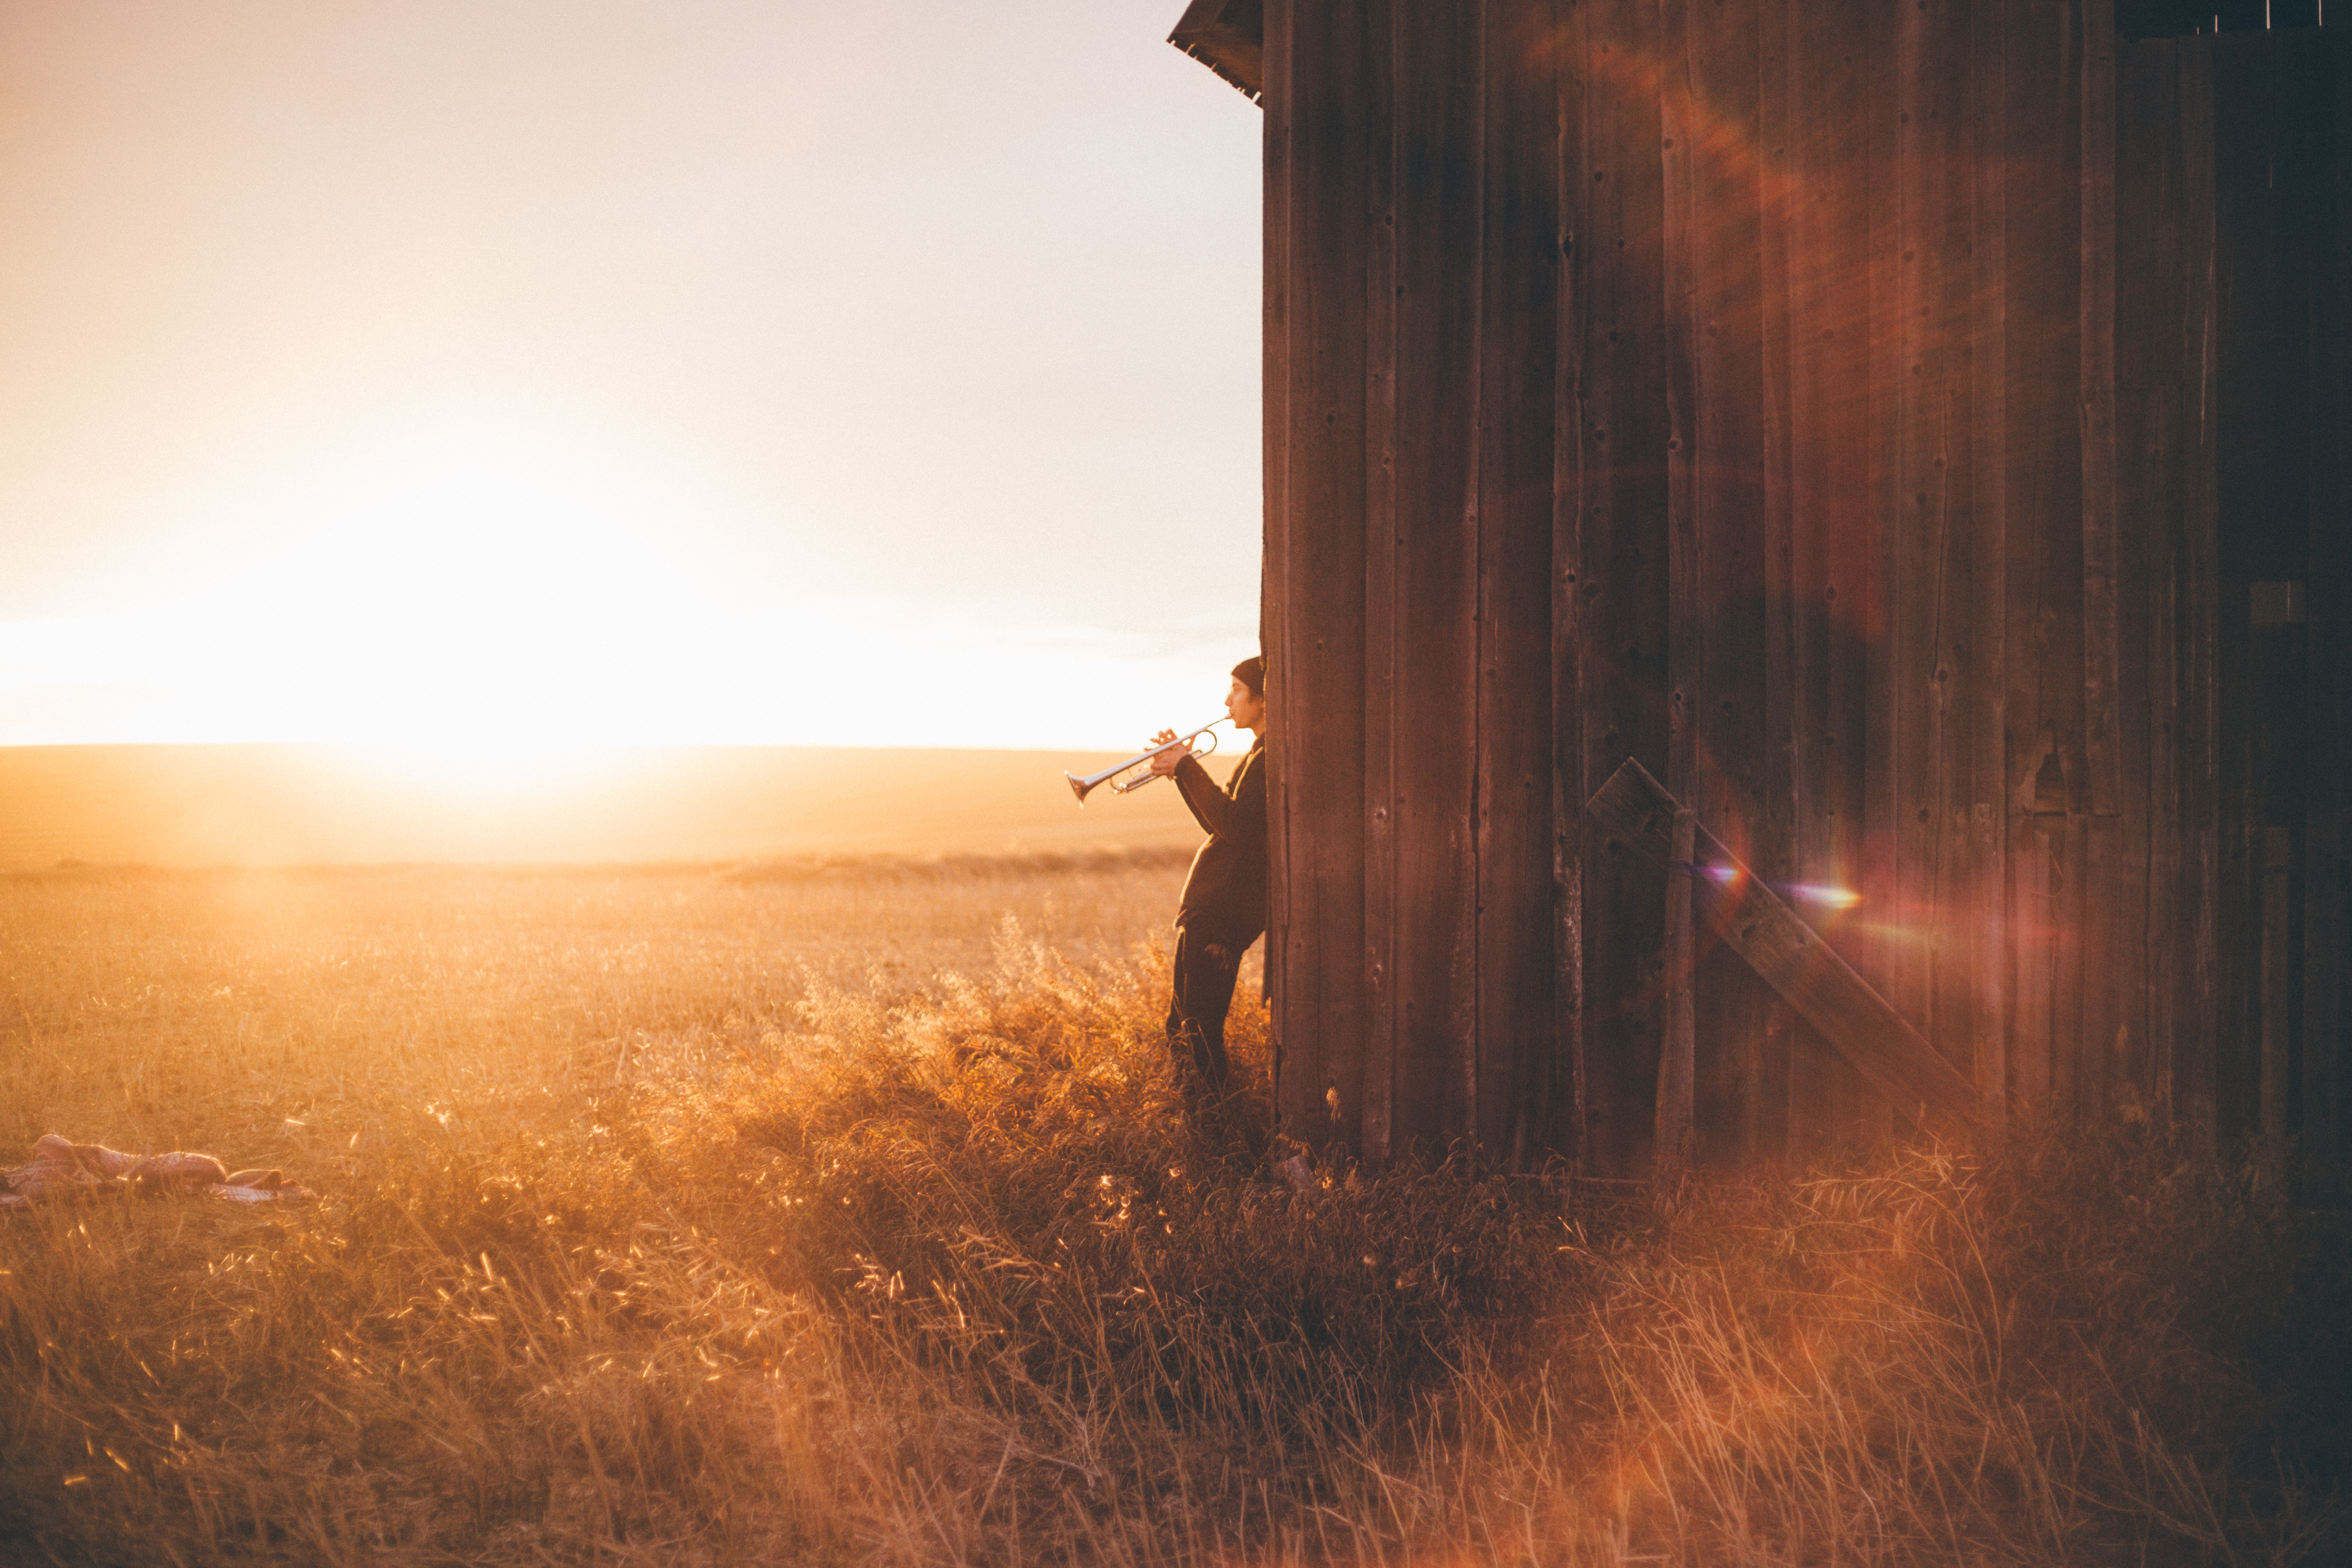 A man plays the trumpet leaning back against a barn wall and facing a golden field